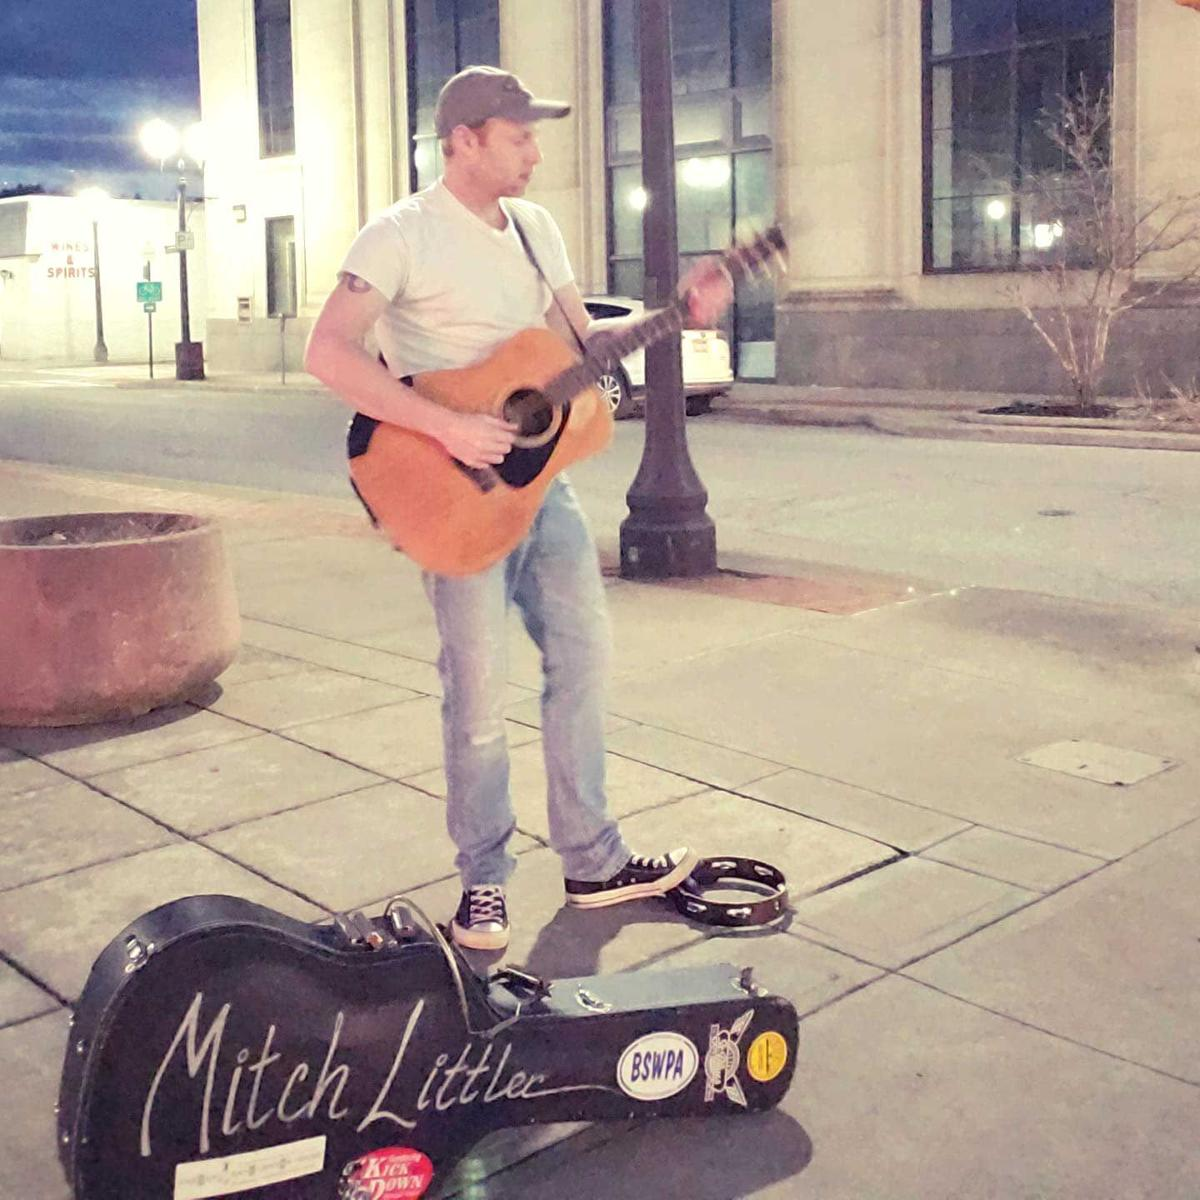 Oil City man's corner concerts are music to people's ears